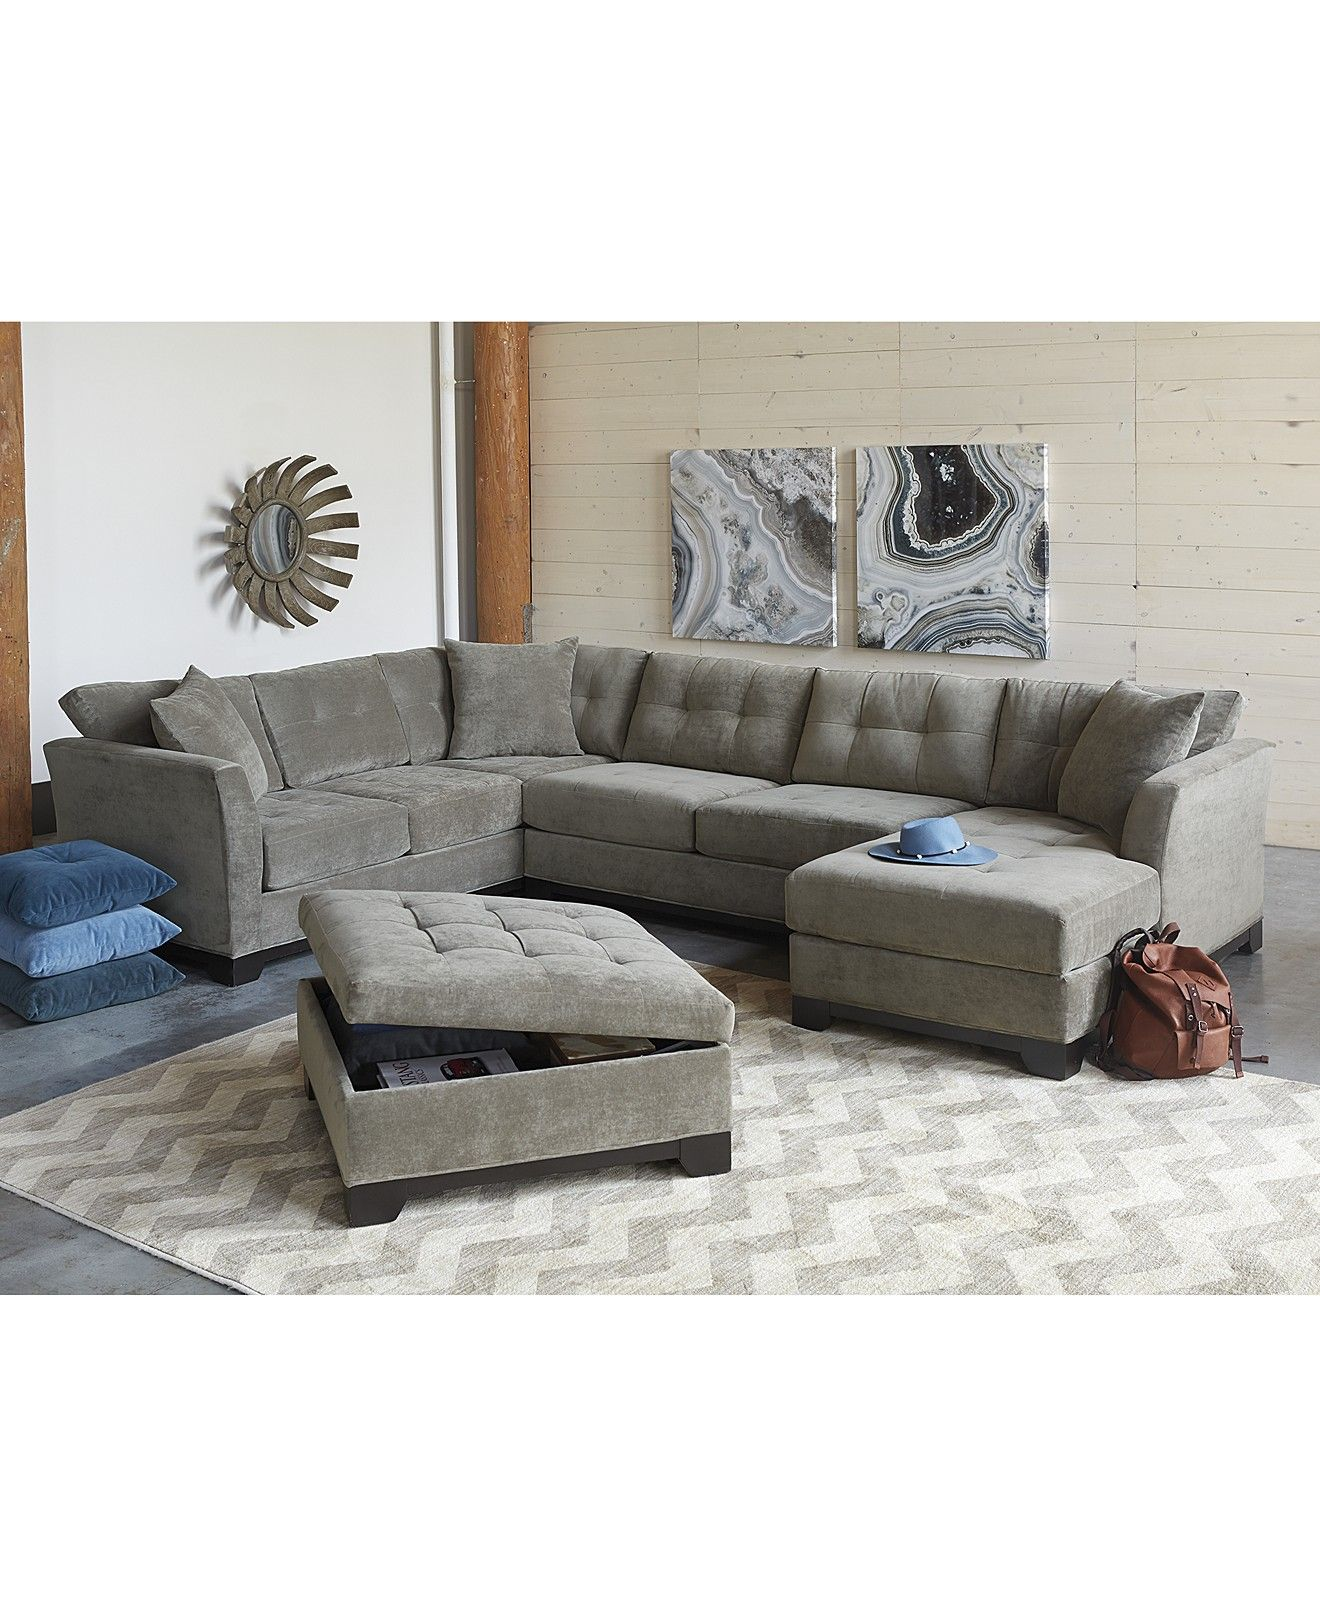 Elliot Fabric Sectional Living Room Furniture Collection Living. Elegant Living Room Furniture Sets. .